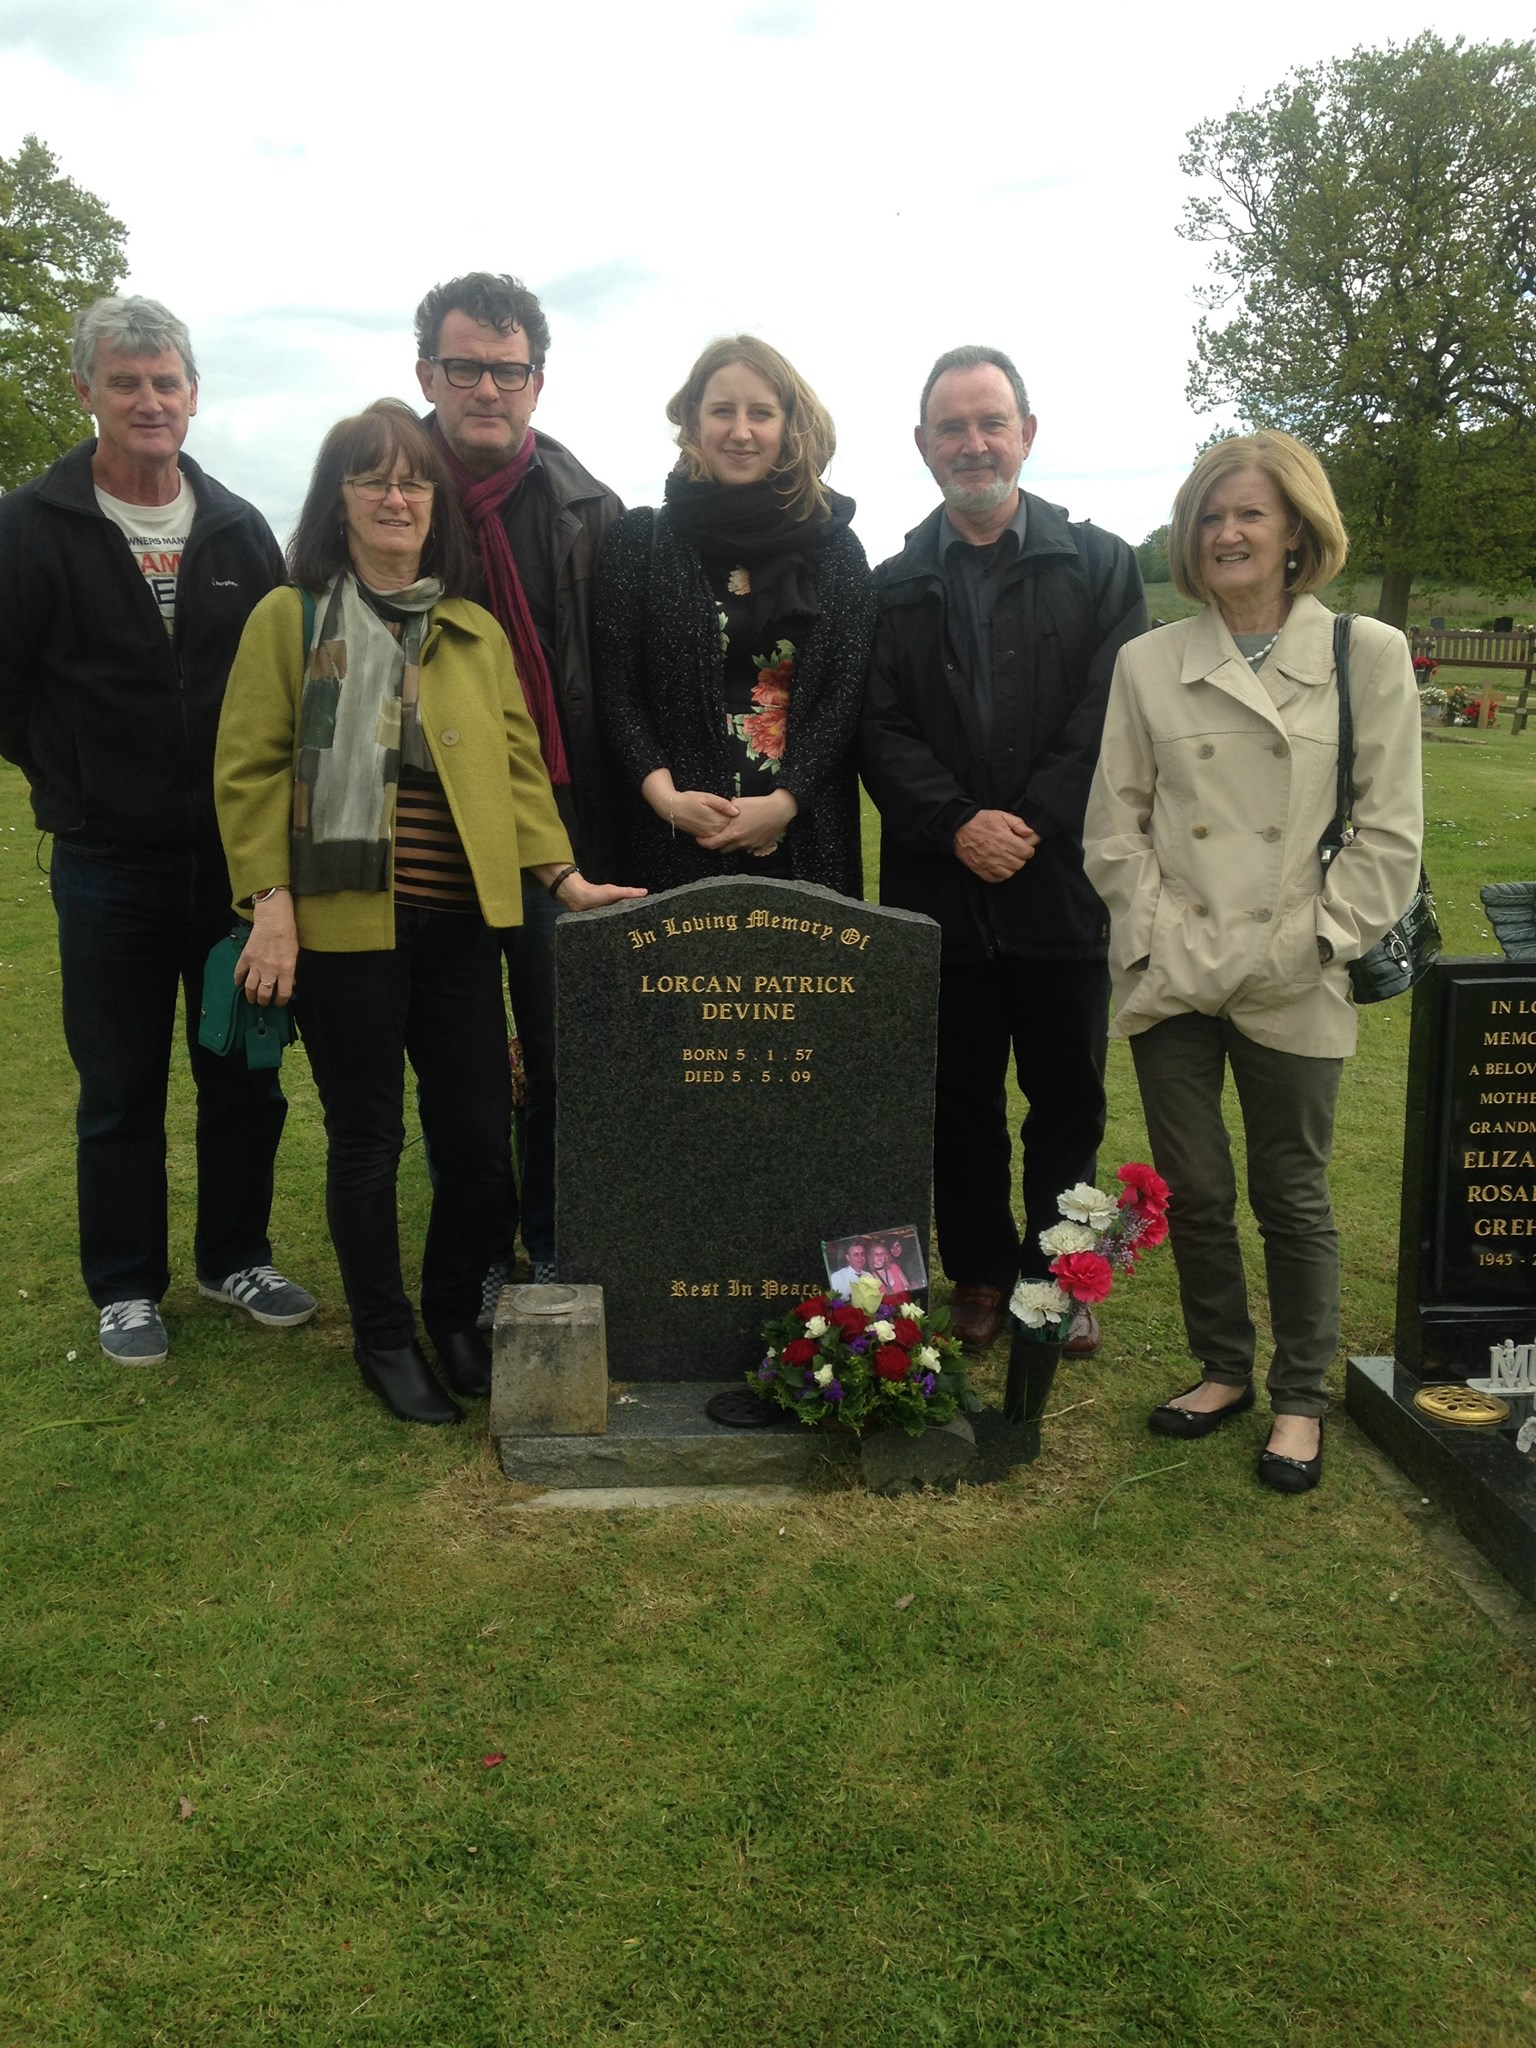 Remembering Lorcan today...all 5 siblings and Alice gathered at the graveside. Still miss you brother & father xxxxxx